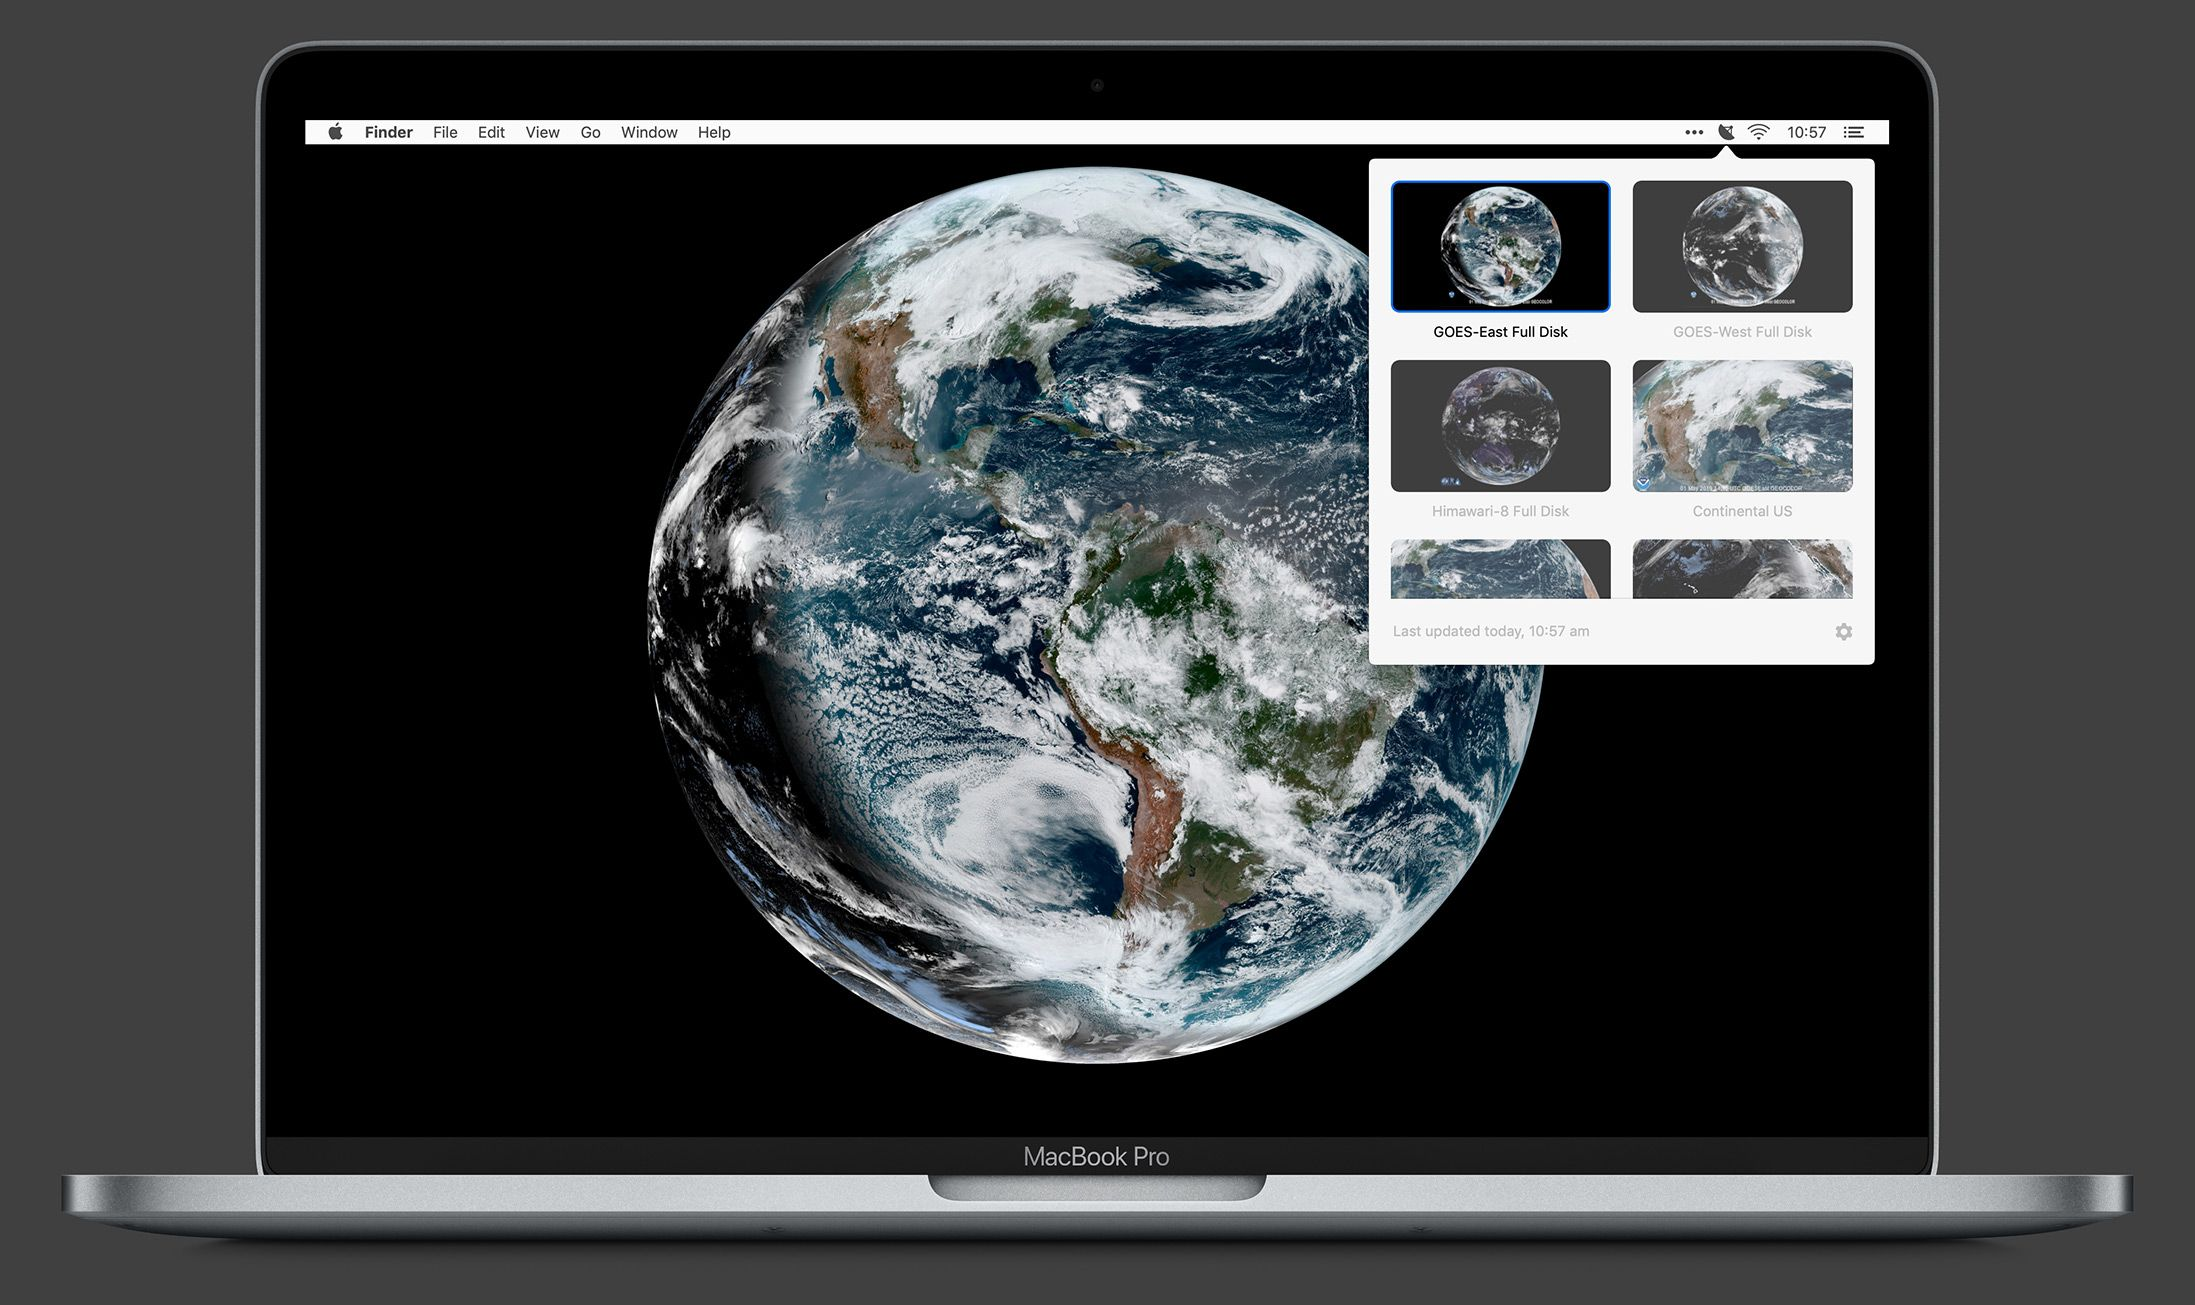 Realtime satellite imagery on your desktop.